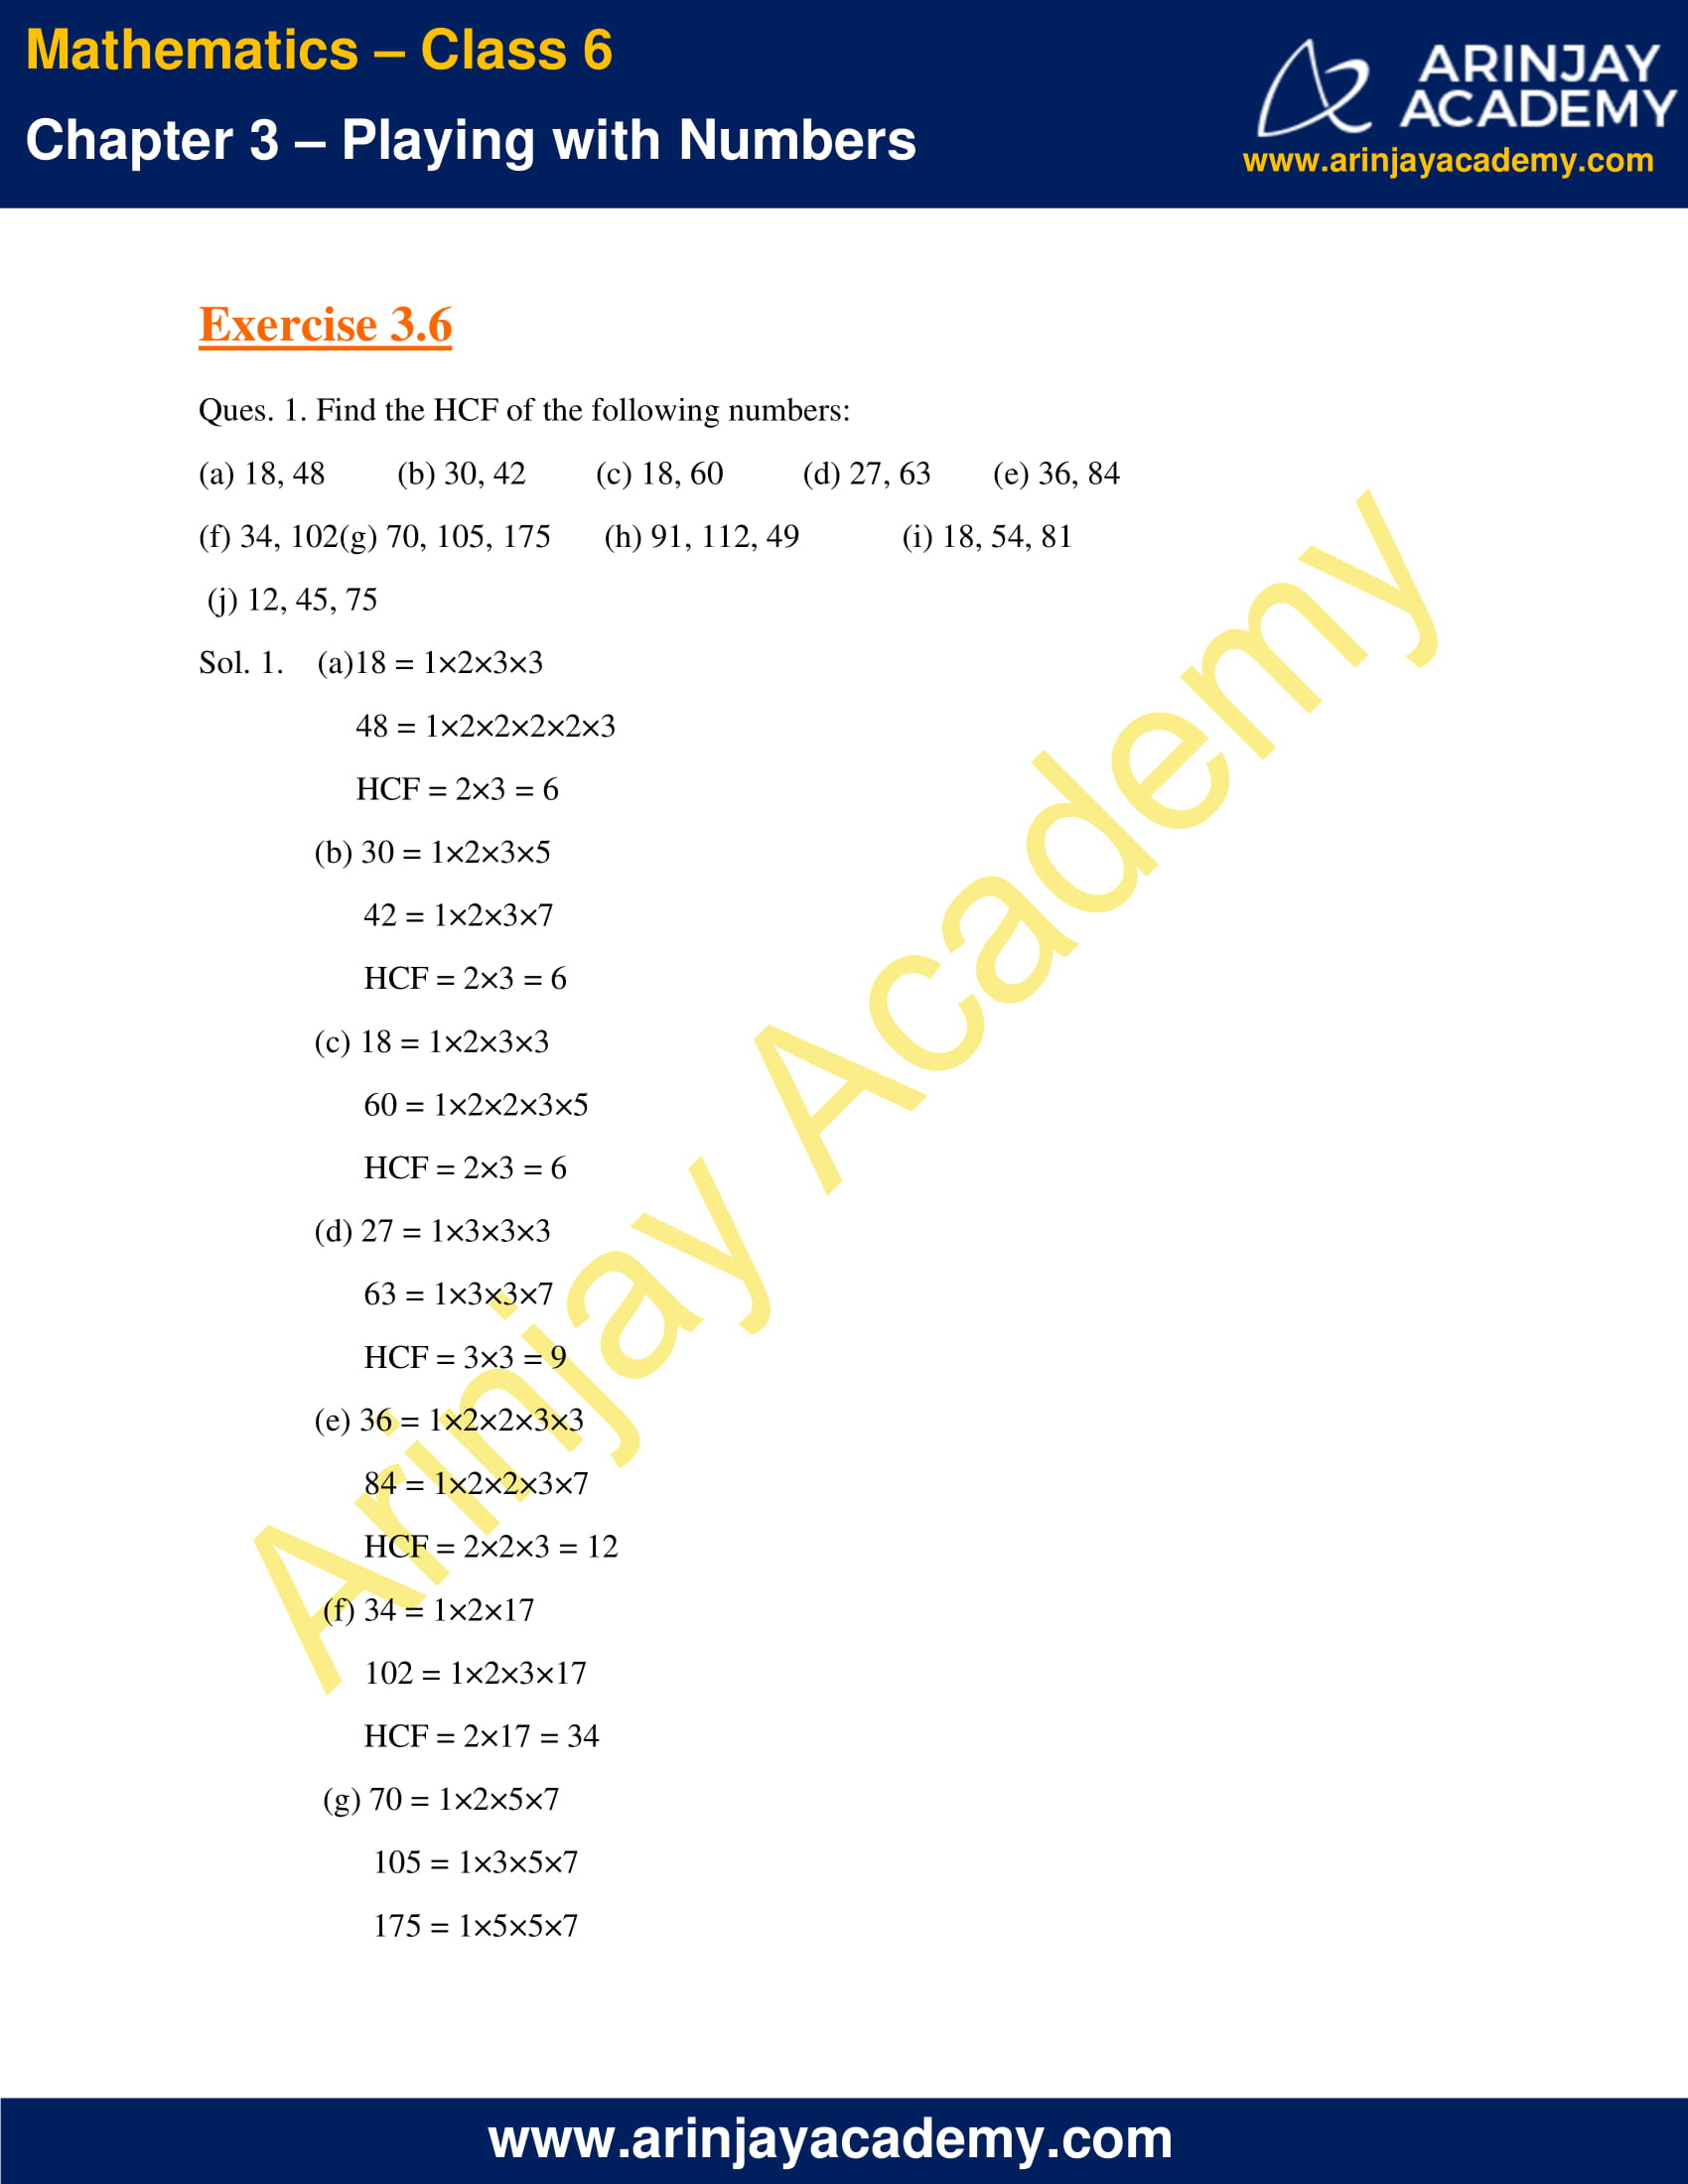 NCERT Solutions for Class 6 Maths Chapter 3 Exercise 3.6 image 1